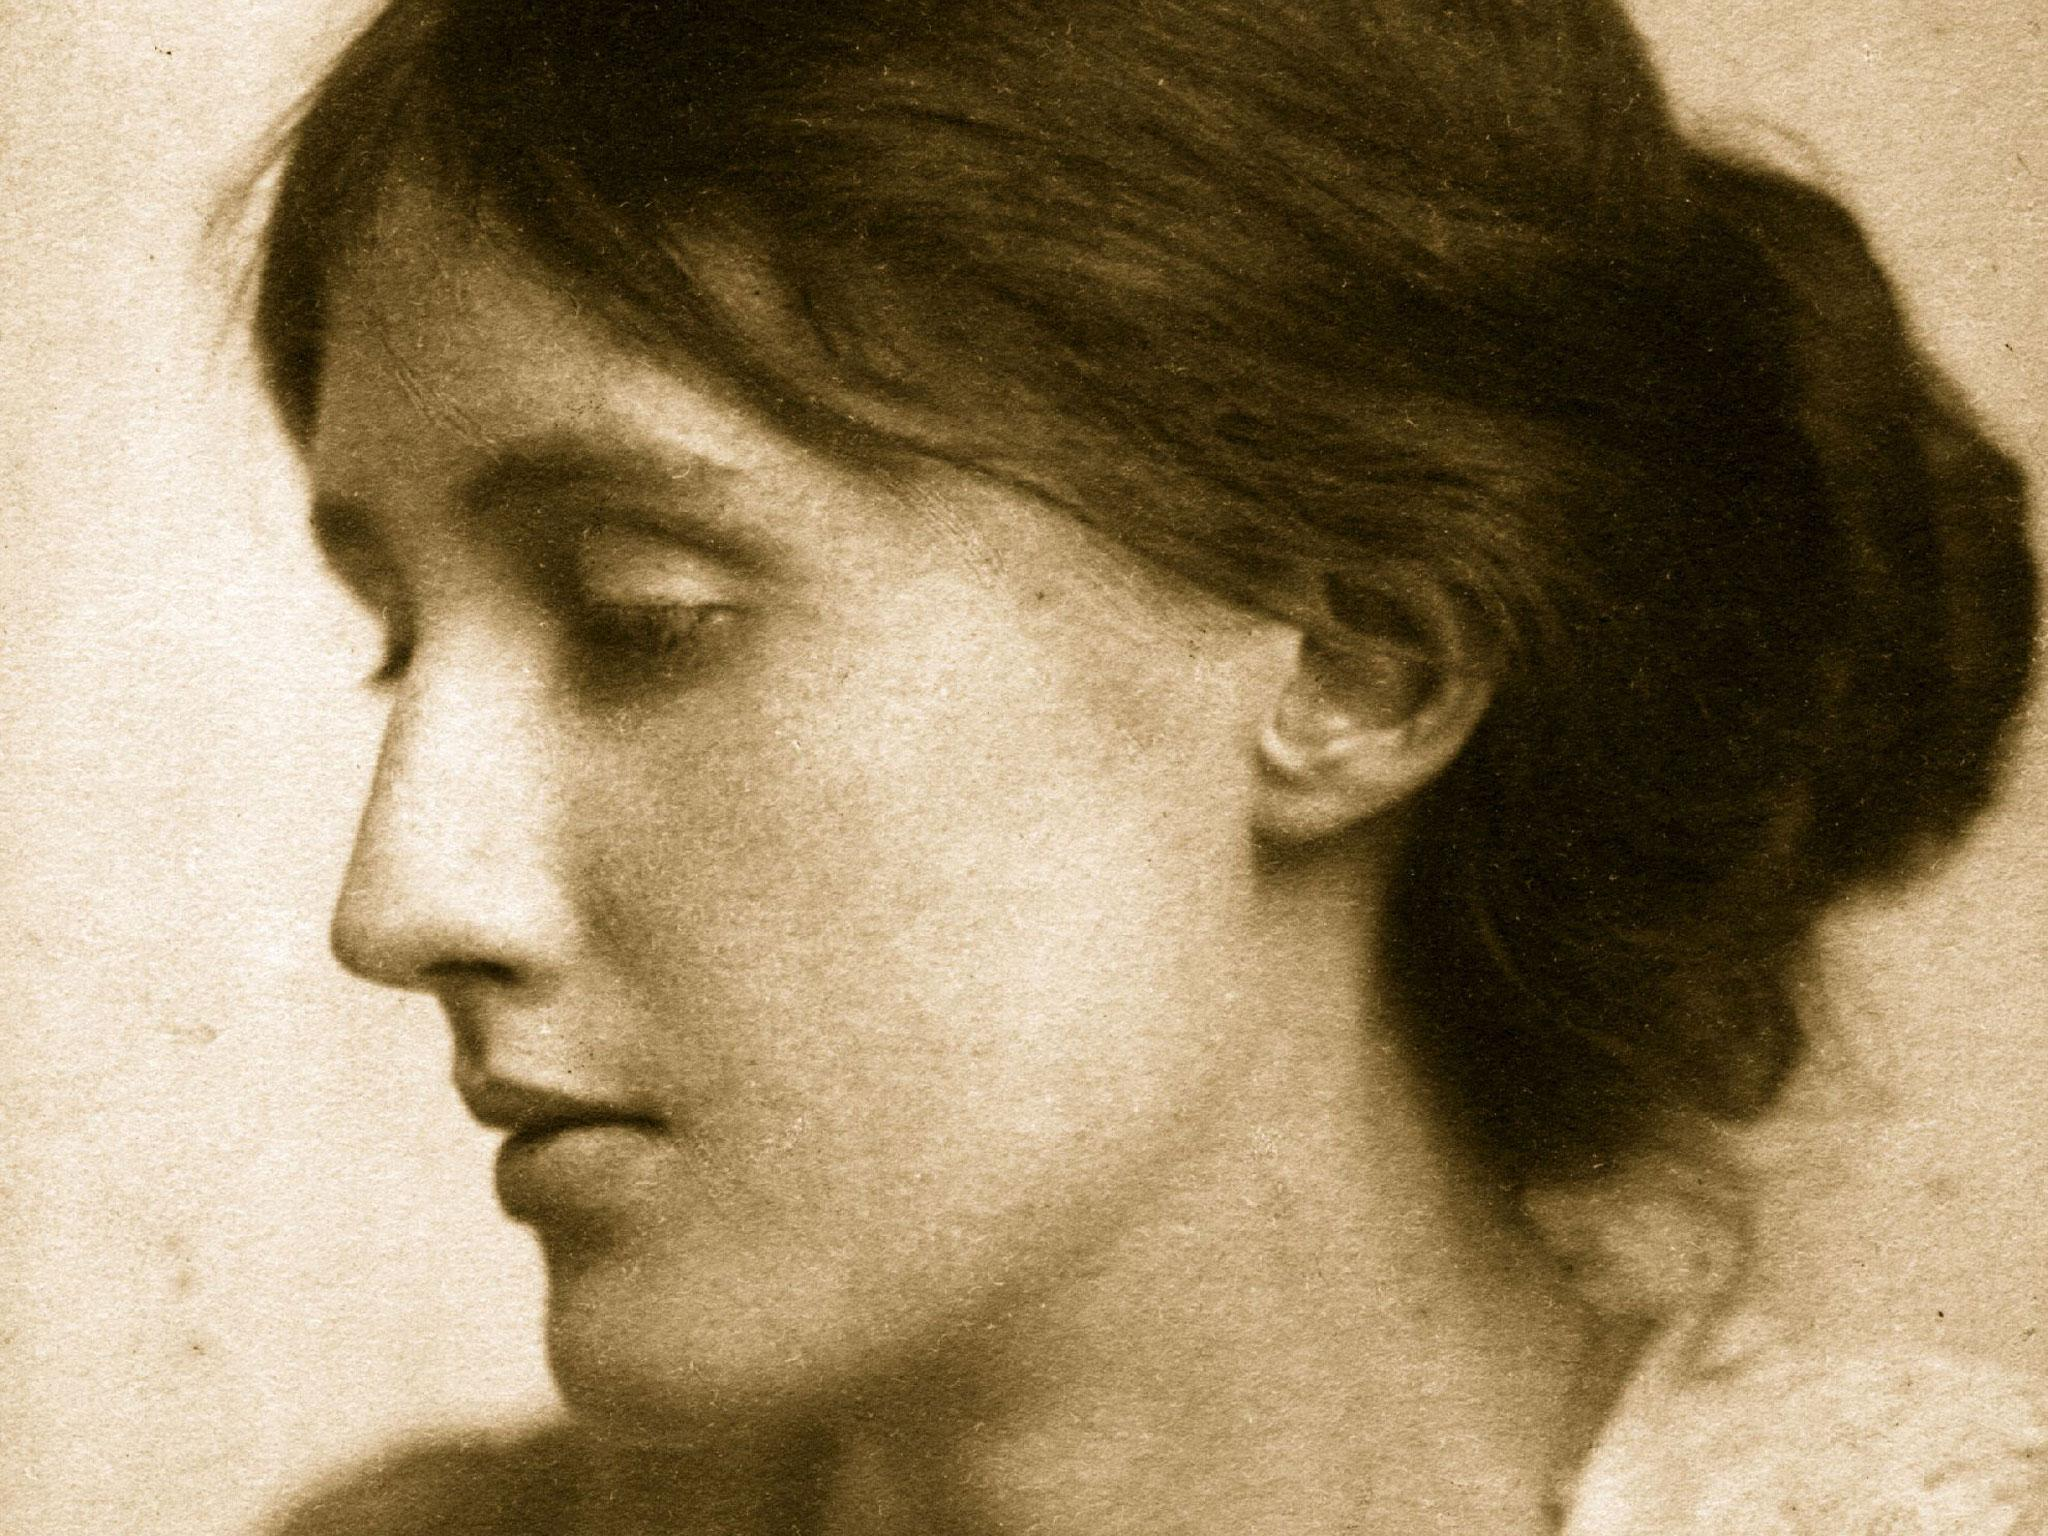 Virginia Woolf's advice on life, womanhood, writing and the world